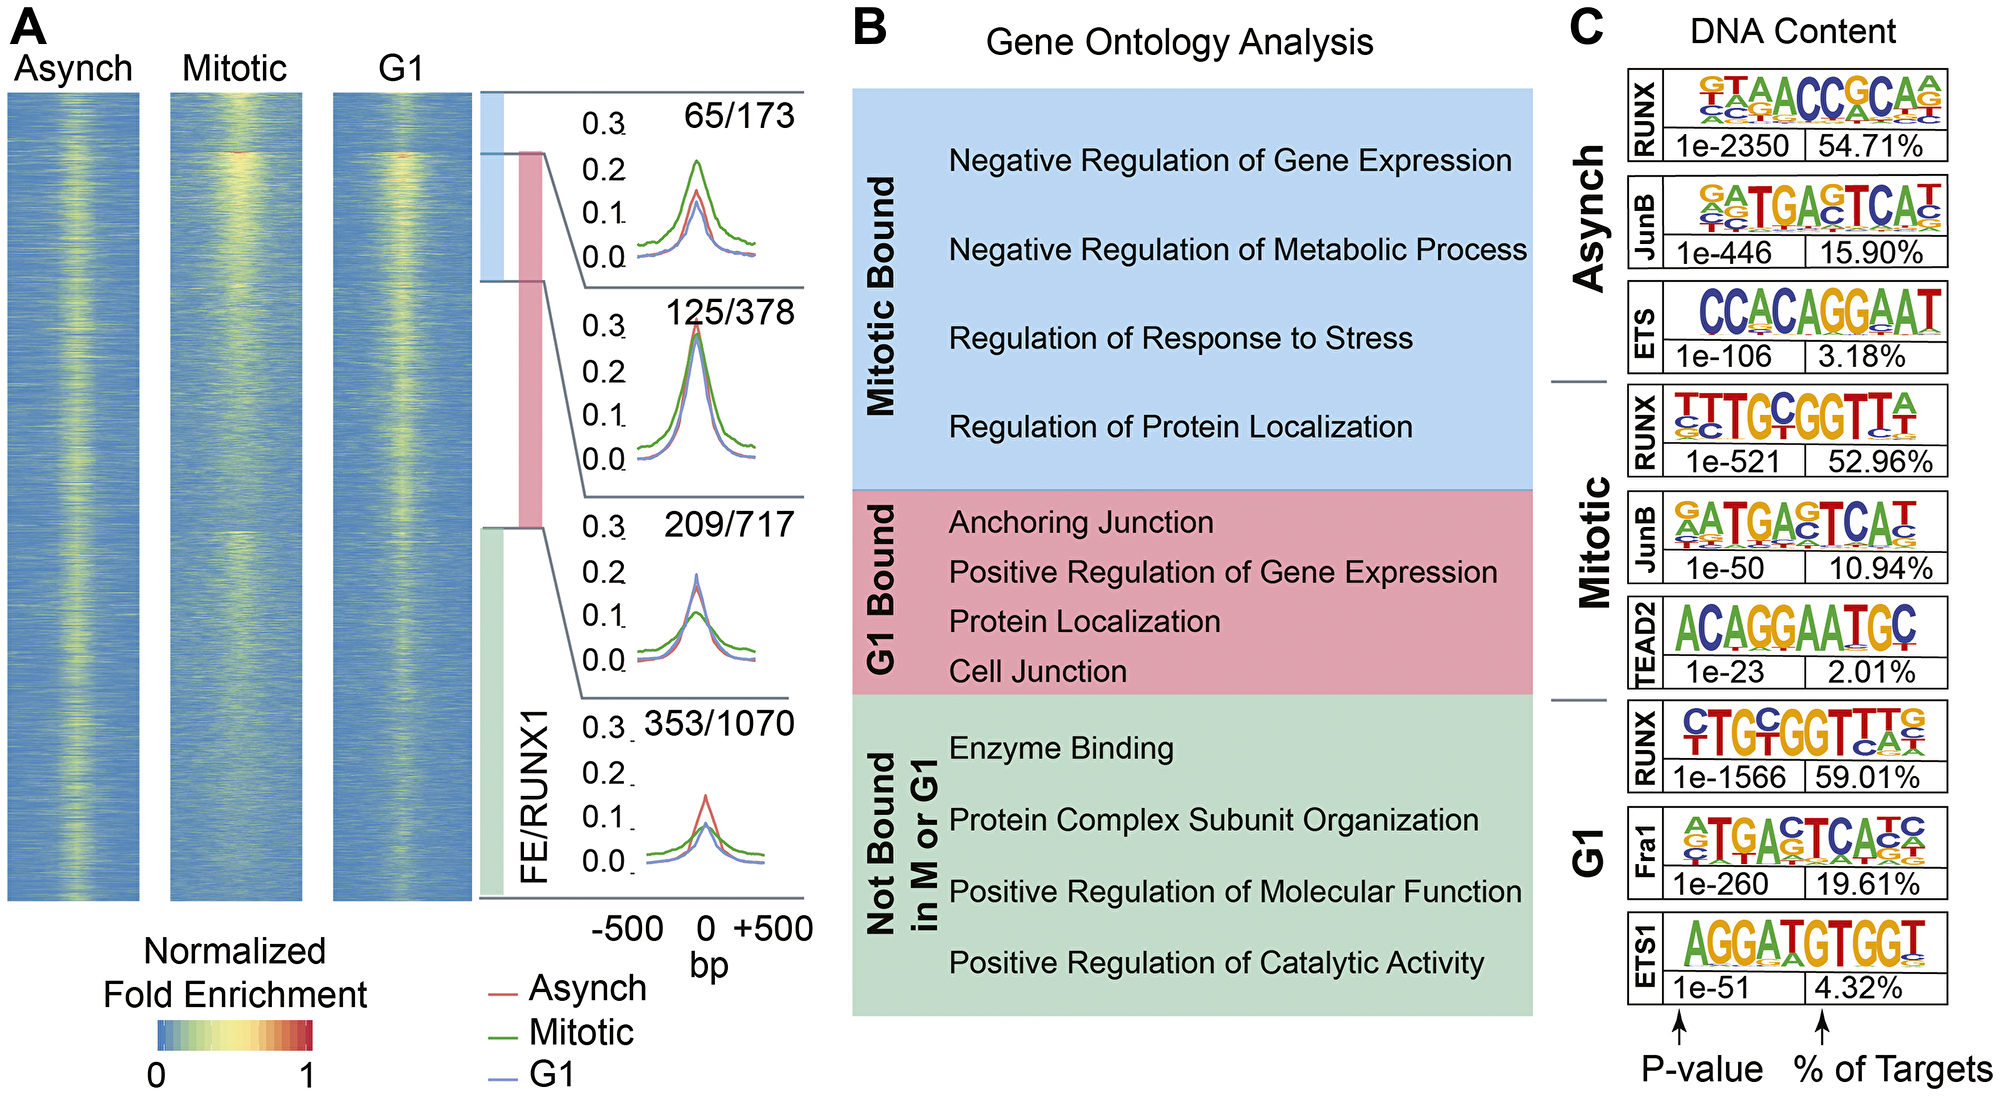 RUNX1 occupies protein coding genes and long non-coding RNAs across asynchronous, mitotic, and G1 populations of MCF10A breast epithelial cells.